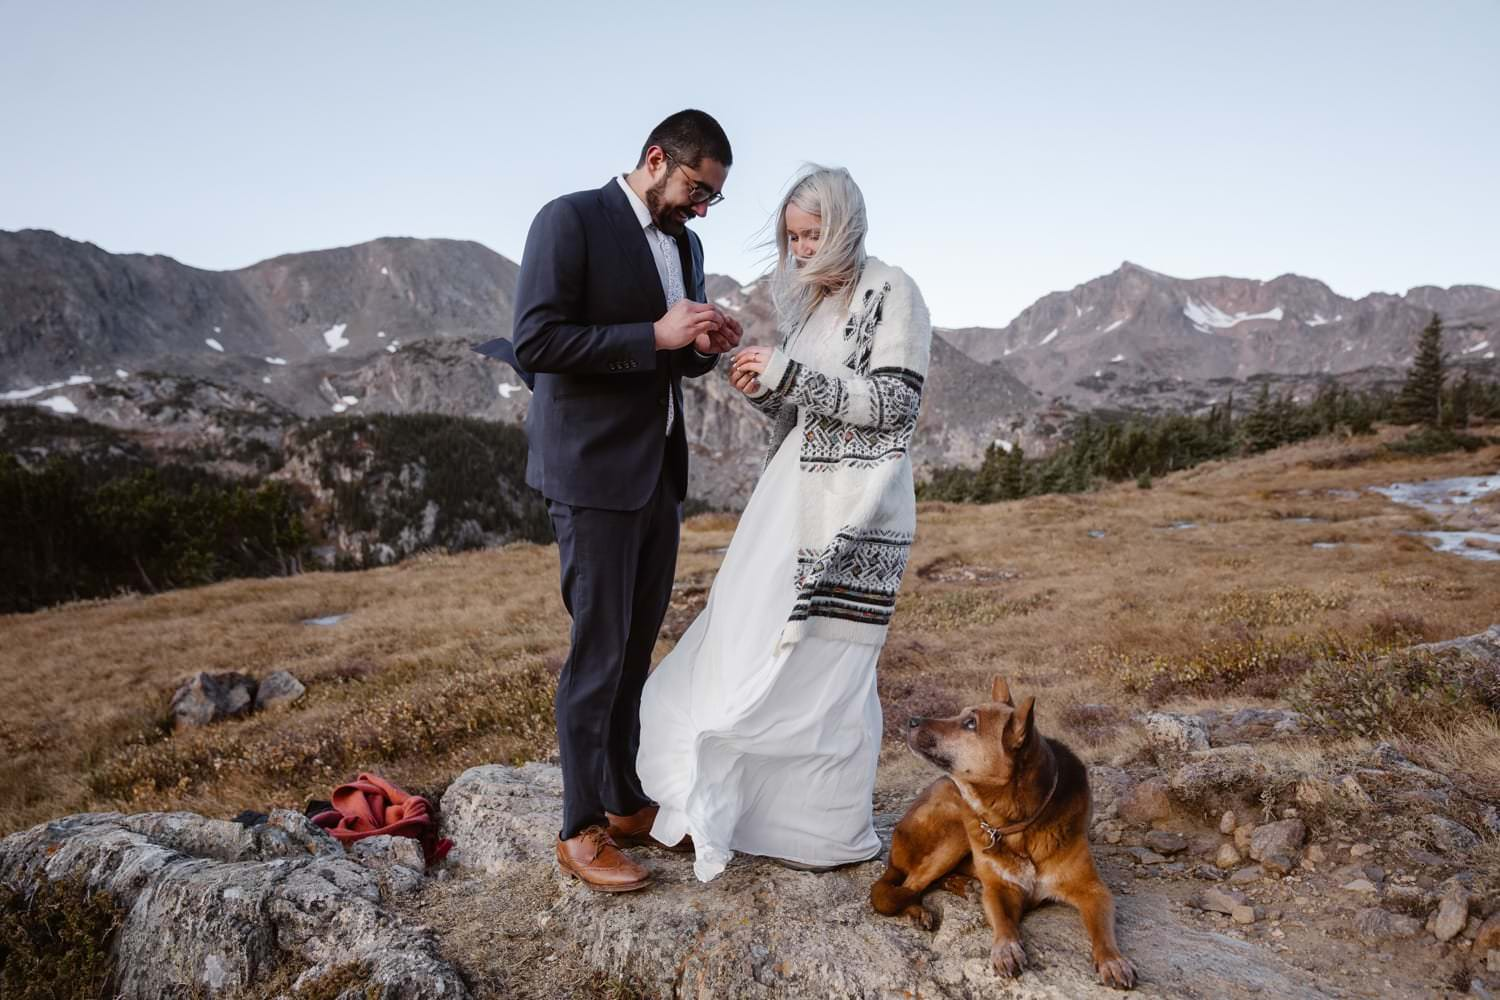 Ring Exchange Colorado Photographer Hiking Adventure Elopement